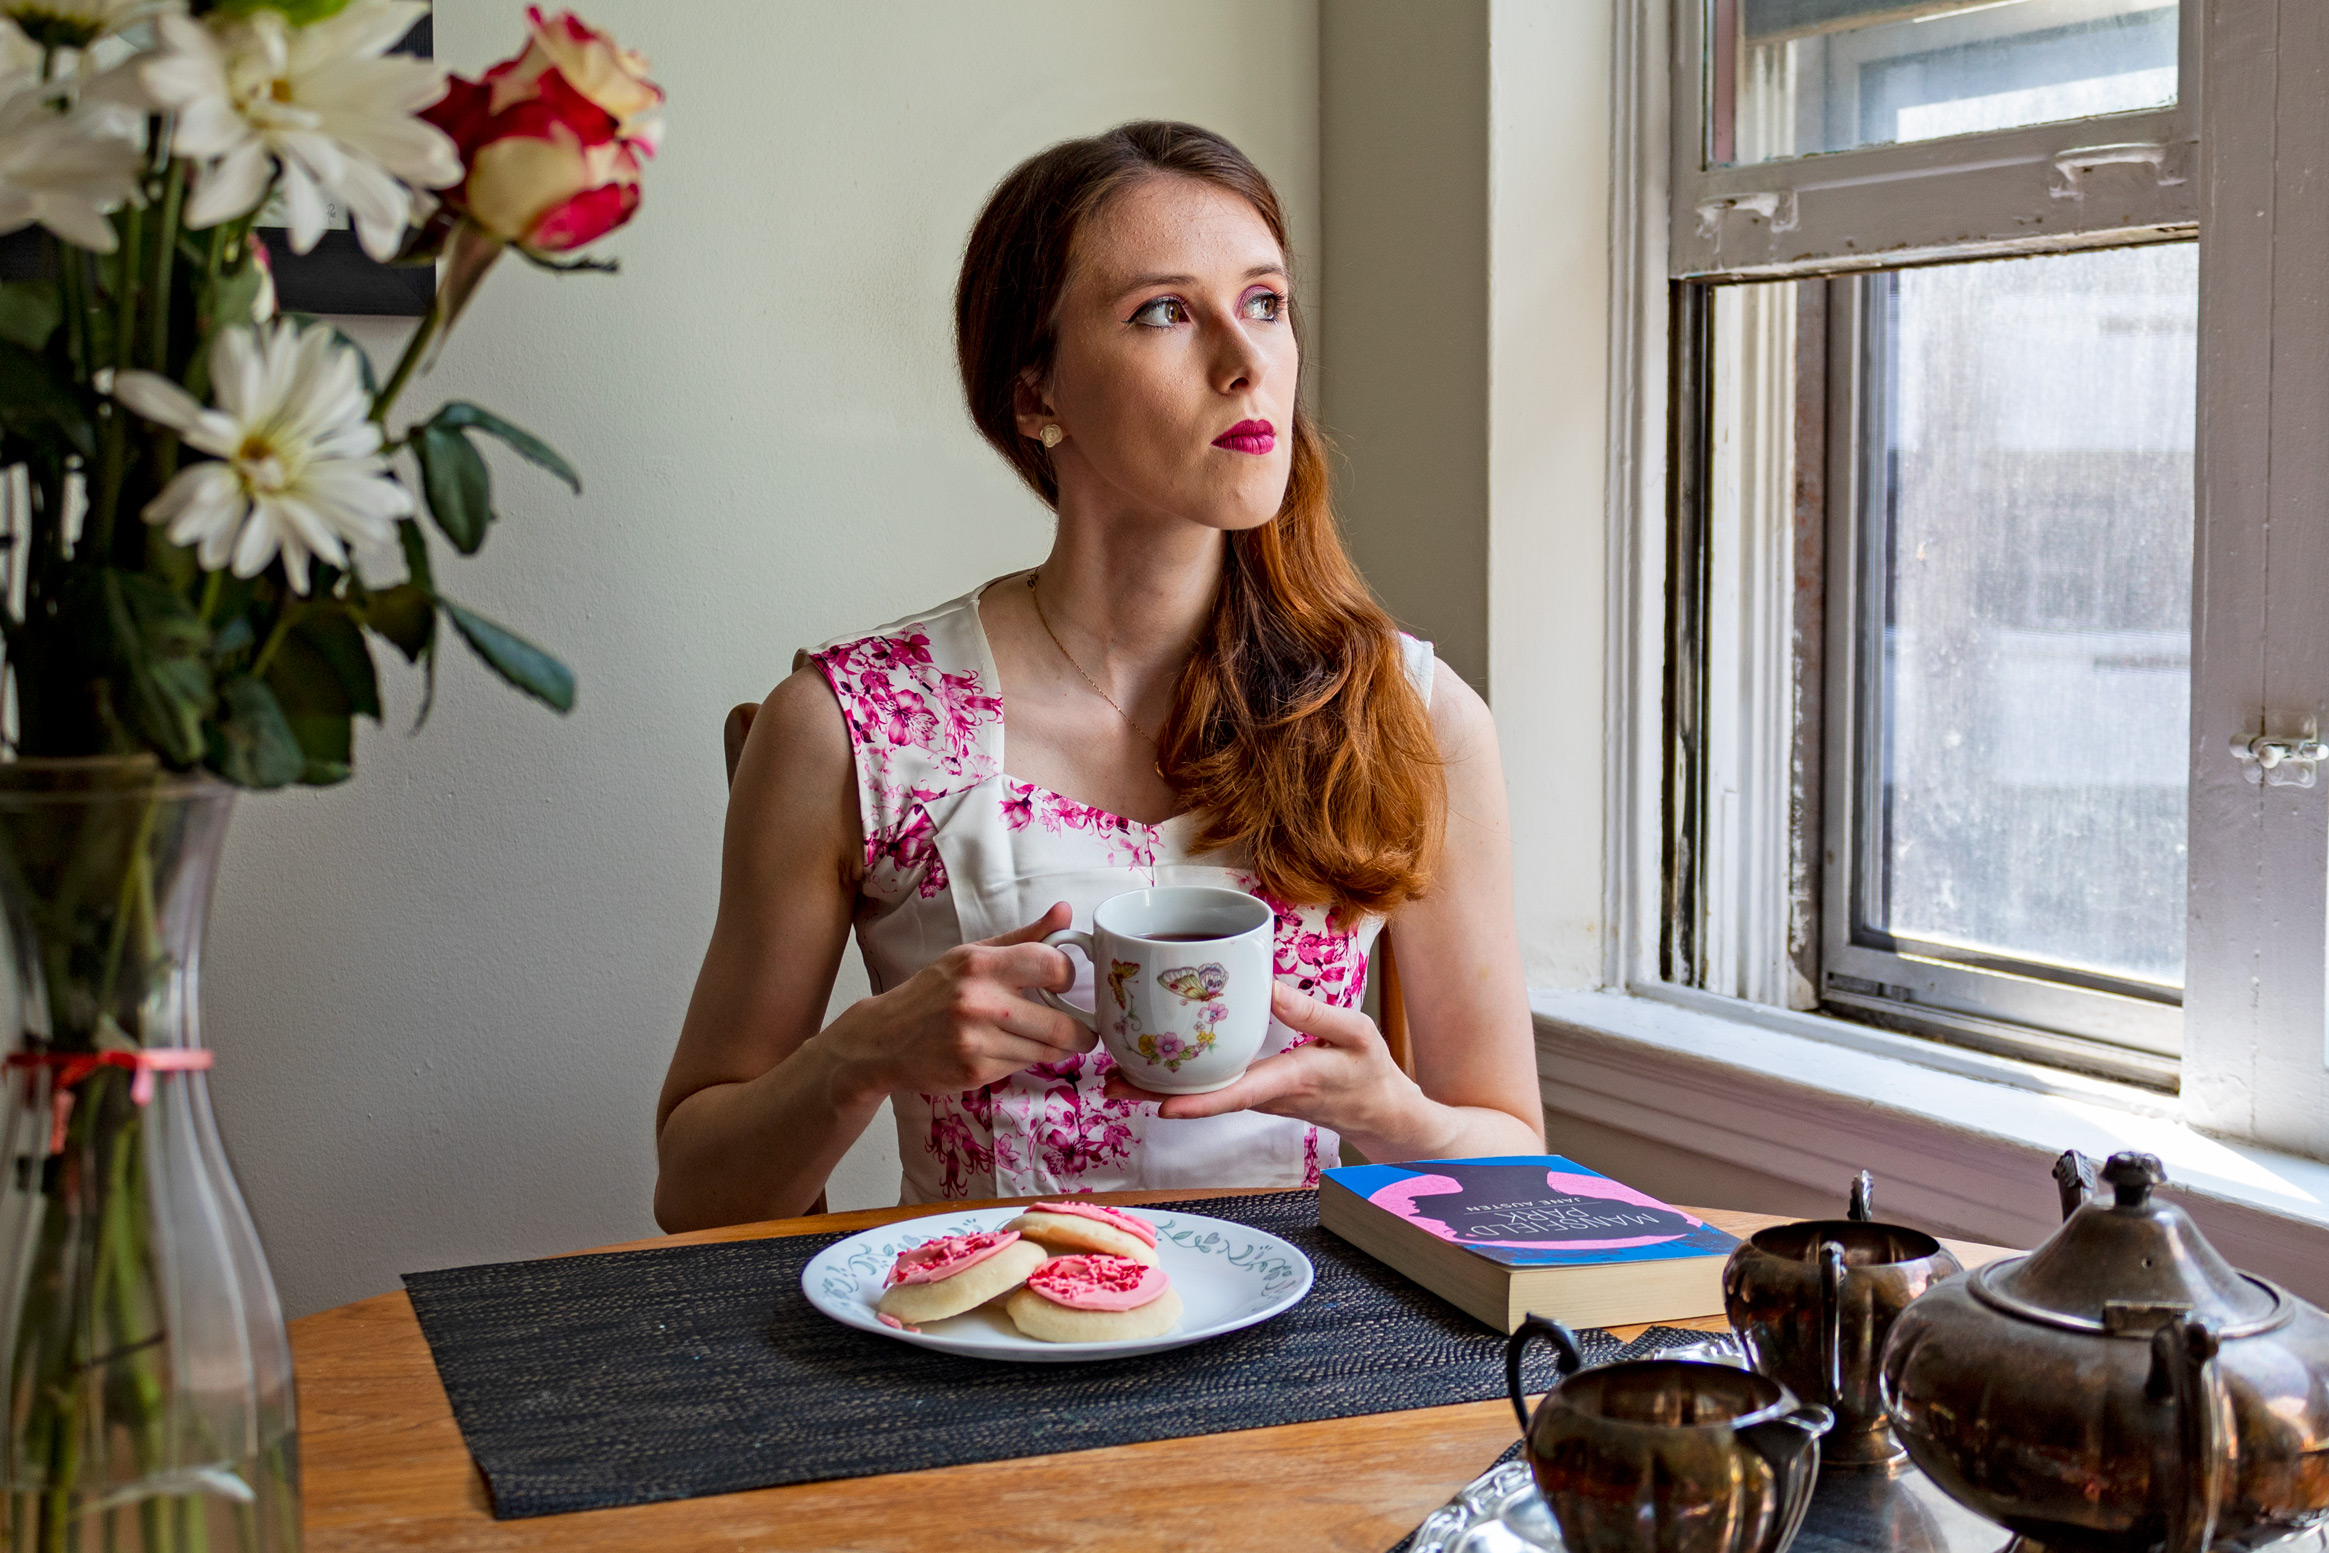 Woman holding a tea cup and gazing out of a window; in front of her are cookies and a book